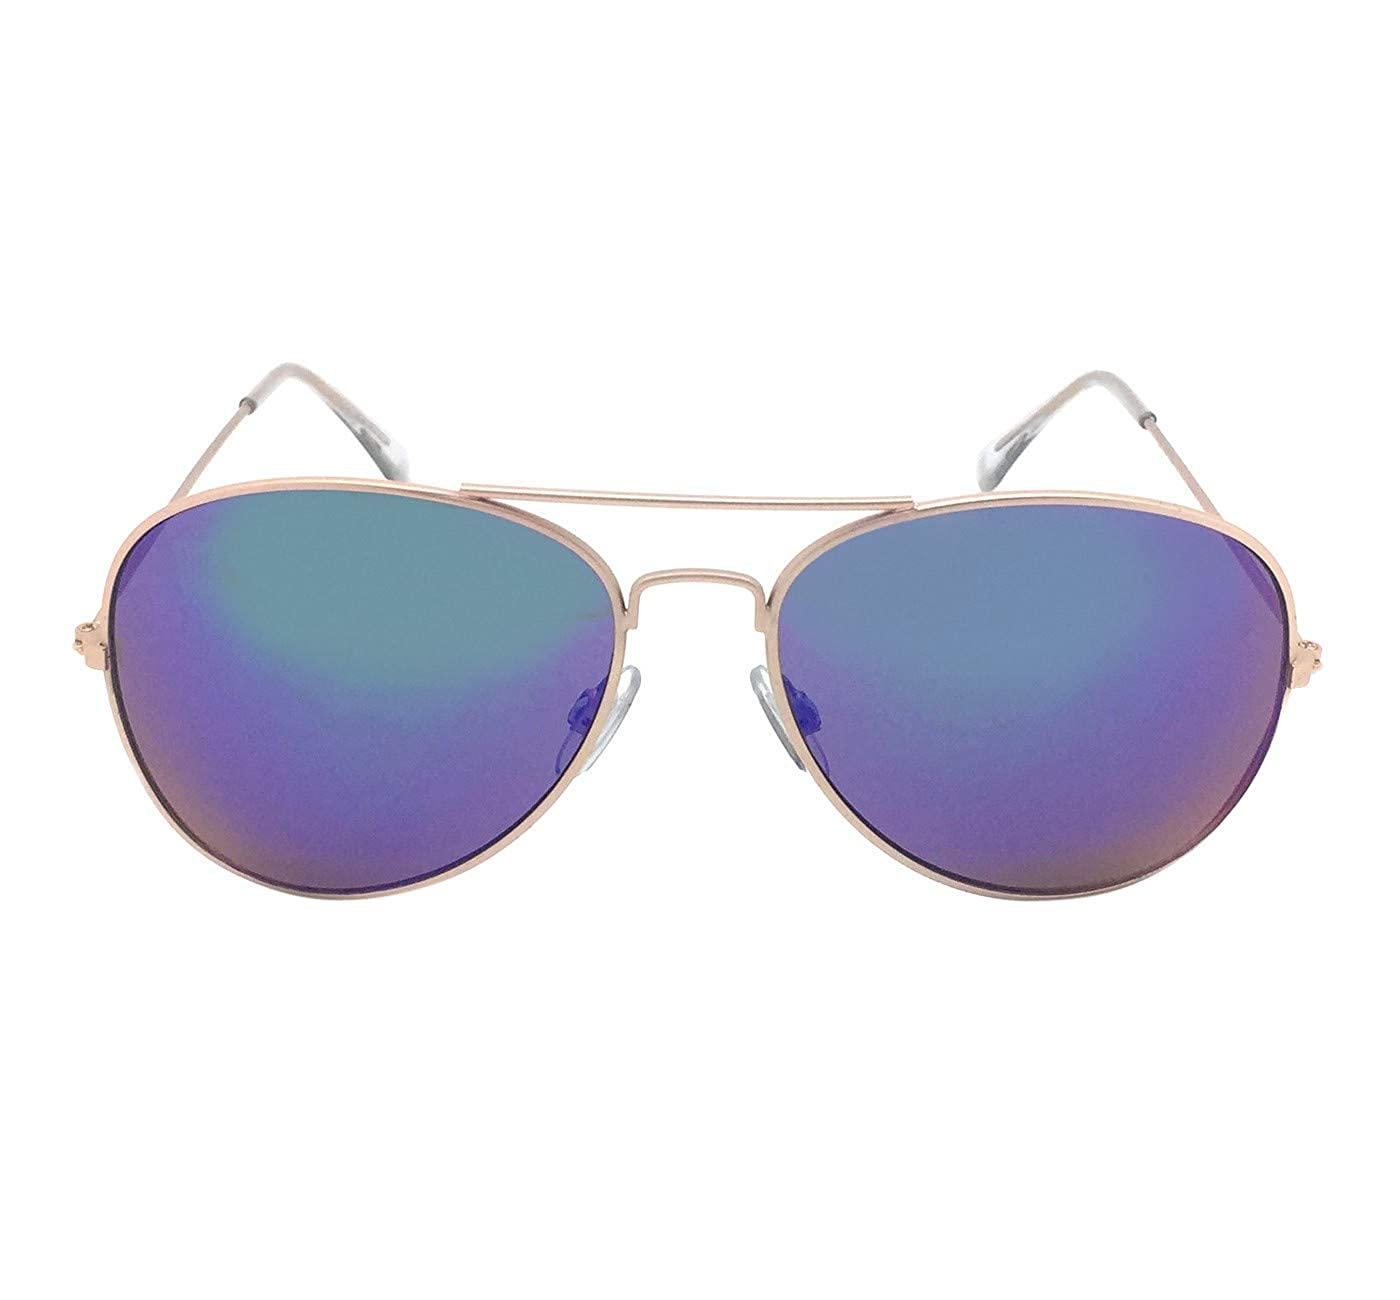 Amazon.com  Sunglasses for Women s - style Aviator w Blue Lenses - Gold   Clothing e4c4e27015